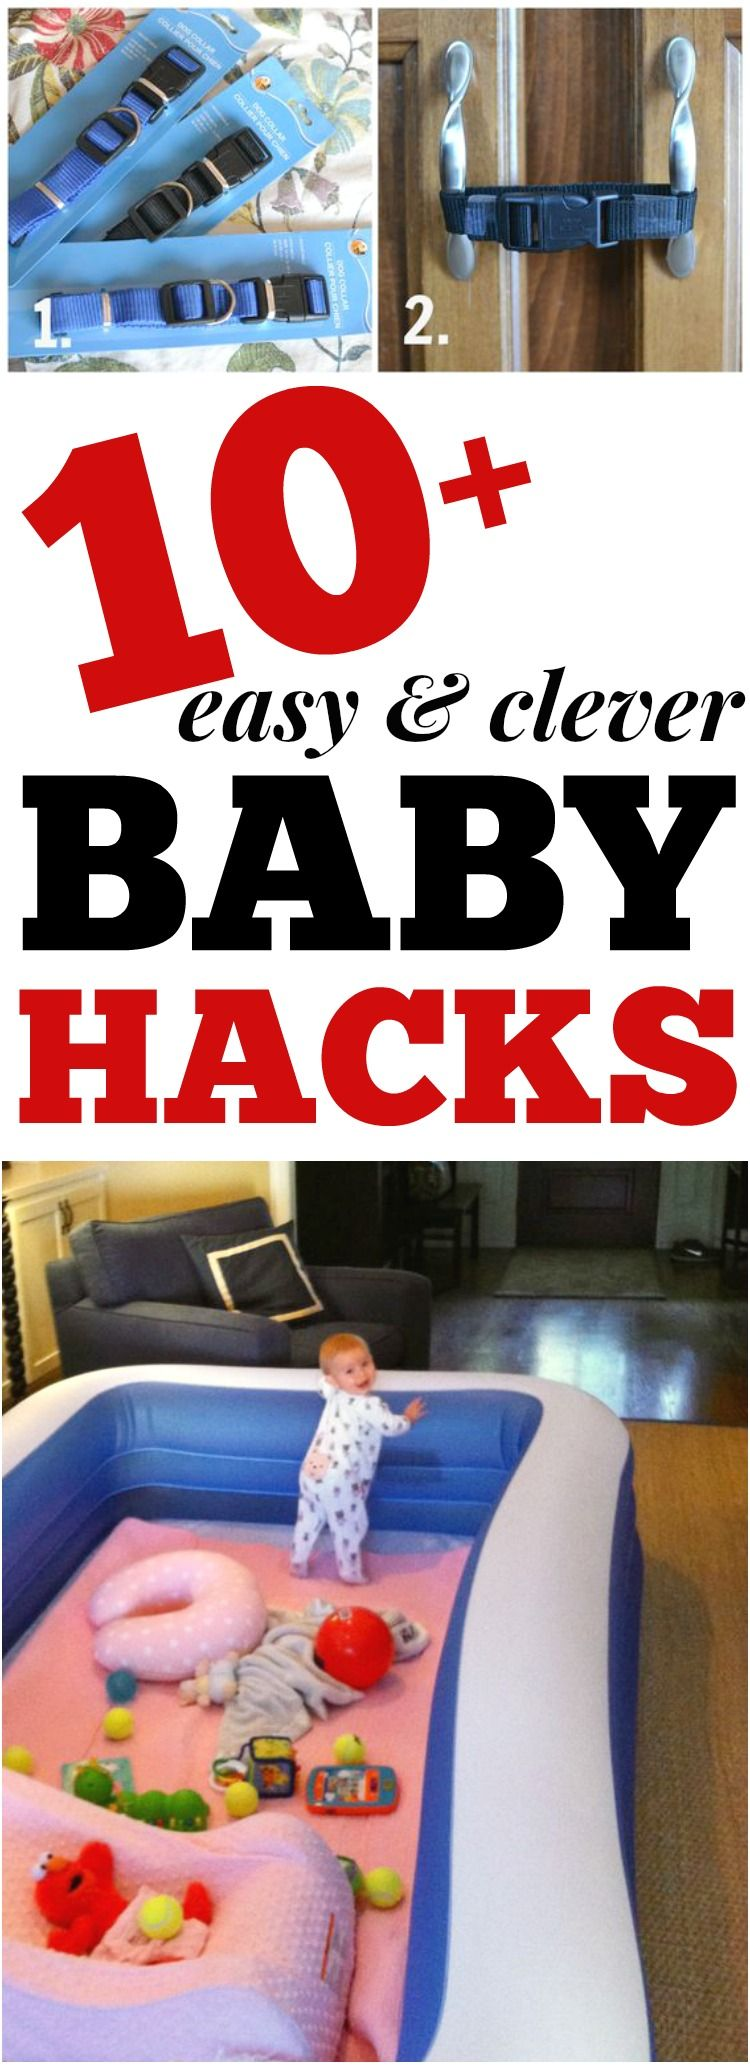 10+ Genius Baby Hacks You Need To Know | Babies, Parents and Future